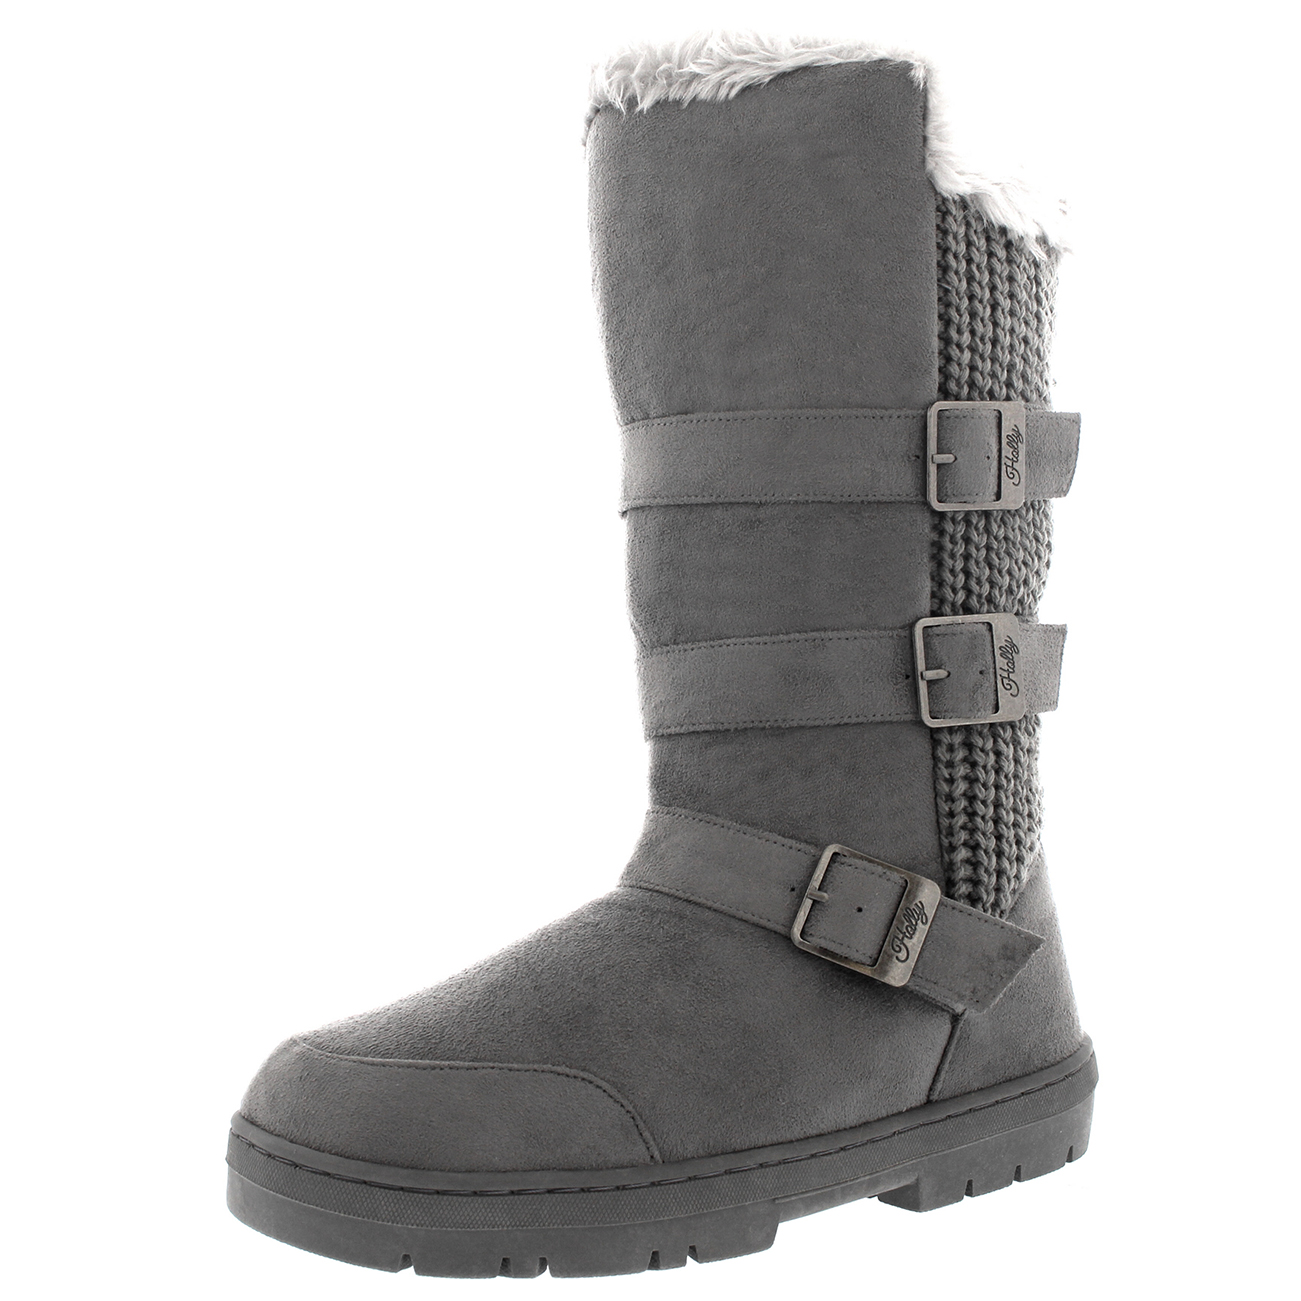 Womens Triple Buckle Fur Lined Waterproof Winter Snow Long ...